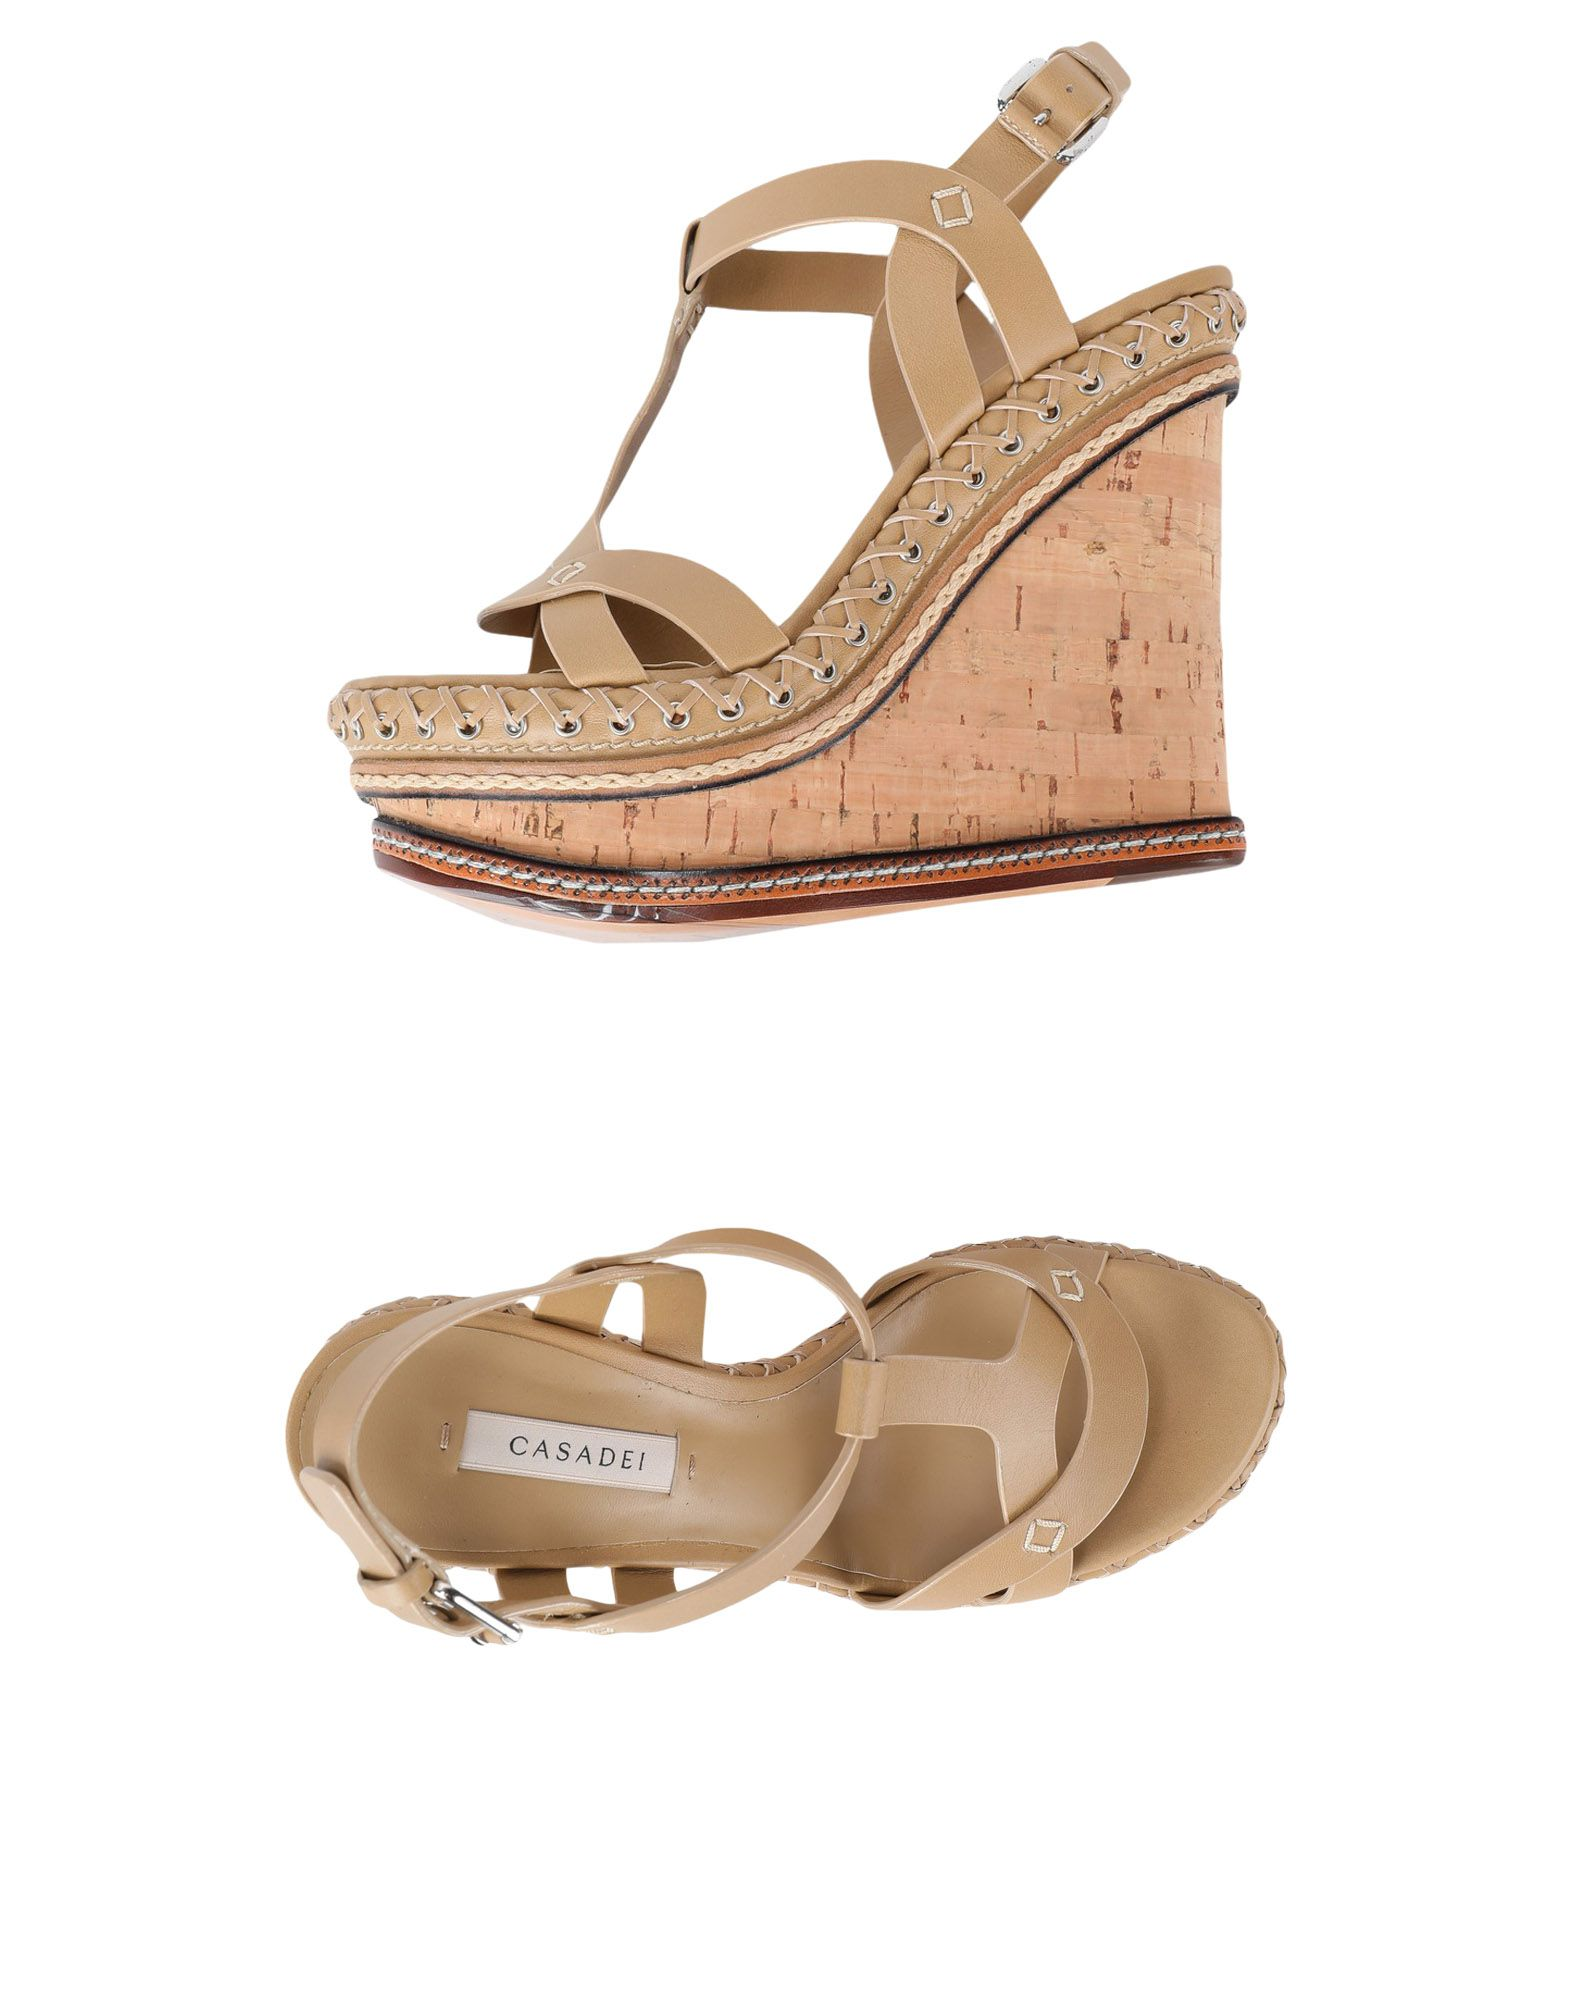 Casadei on Sandals - Women Casadei Sandals online on Casadei  Australia - 11510177TU 8b646c